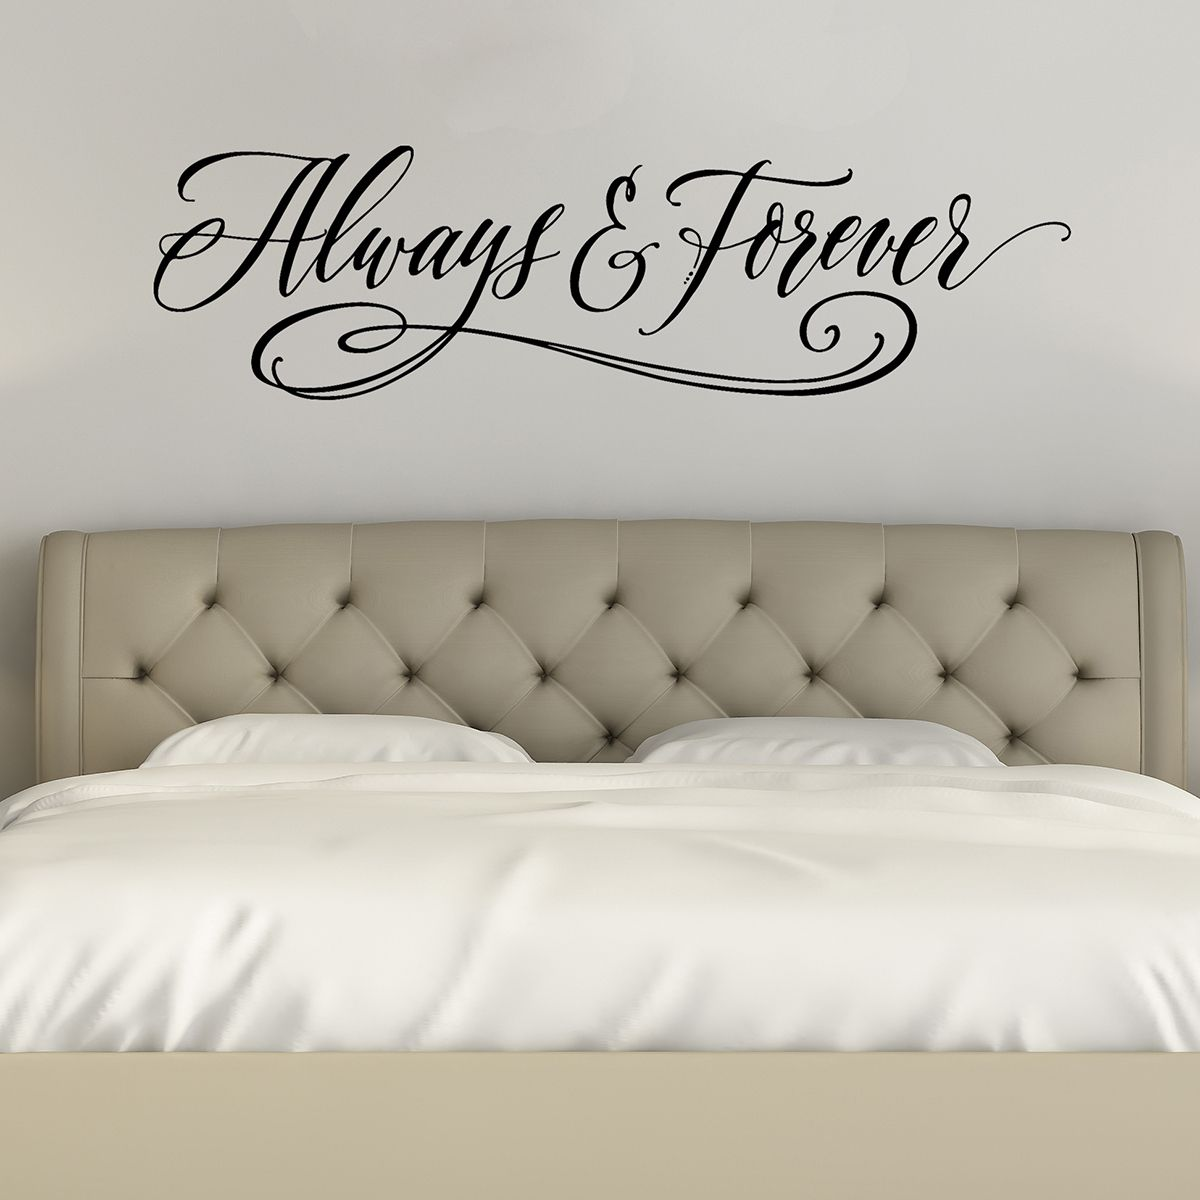 Best Always And Forever Love Wall Decals Bedroom Wall Art 400 x 300